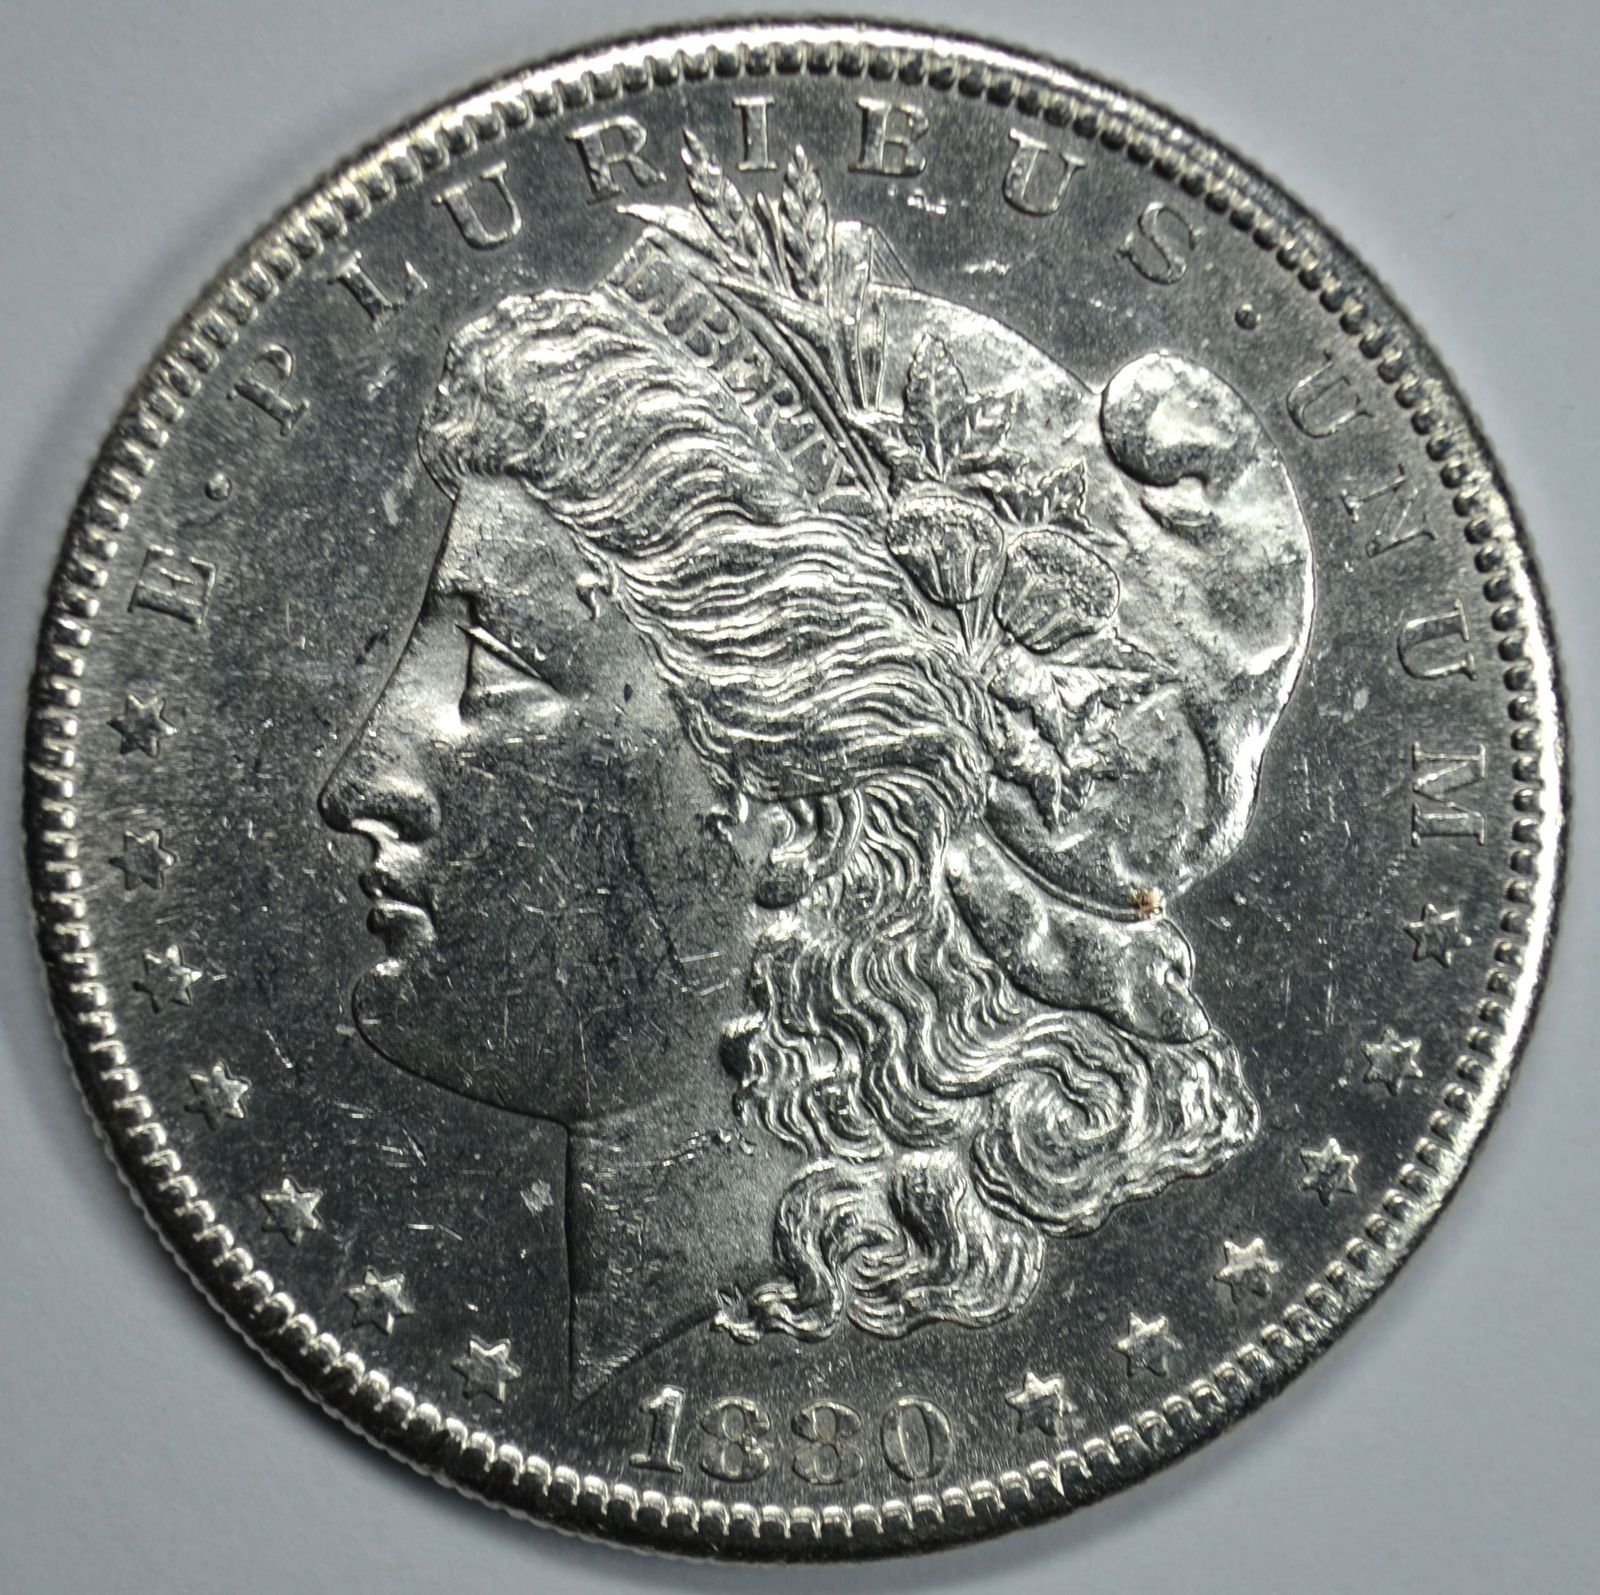 Primary image for 1880 S Morgan silver dollar AU details